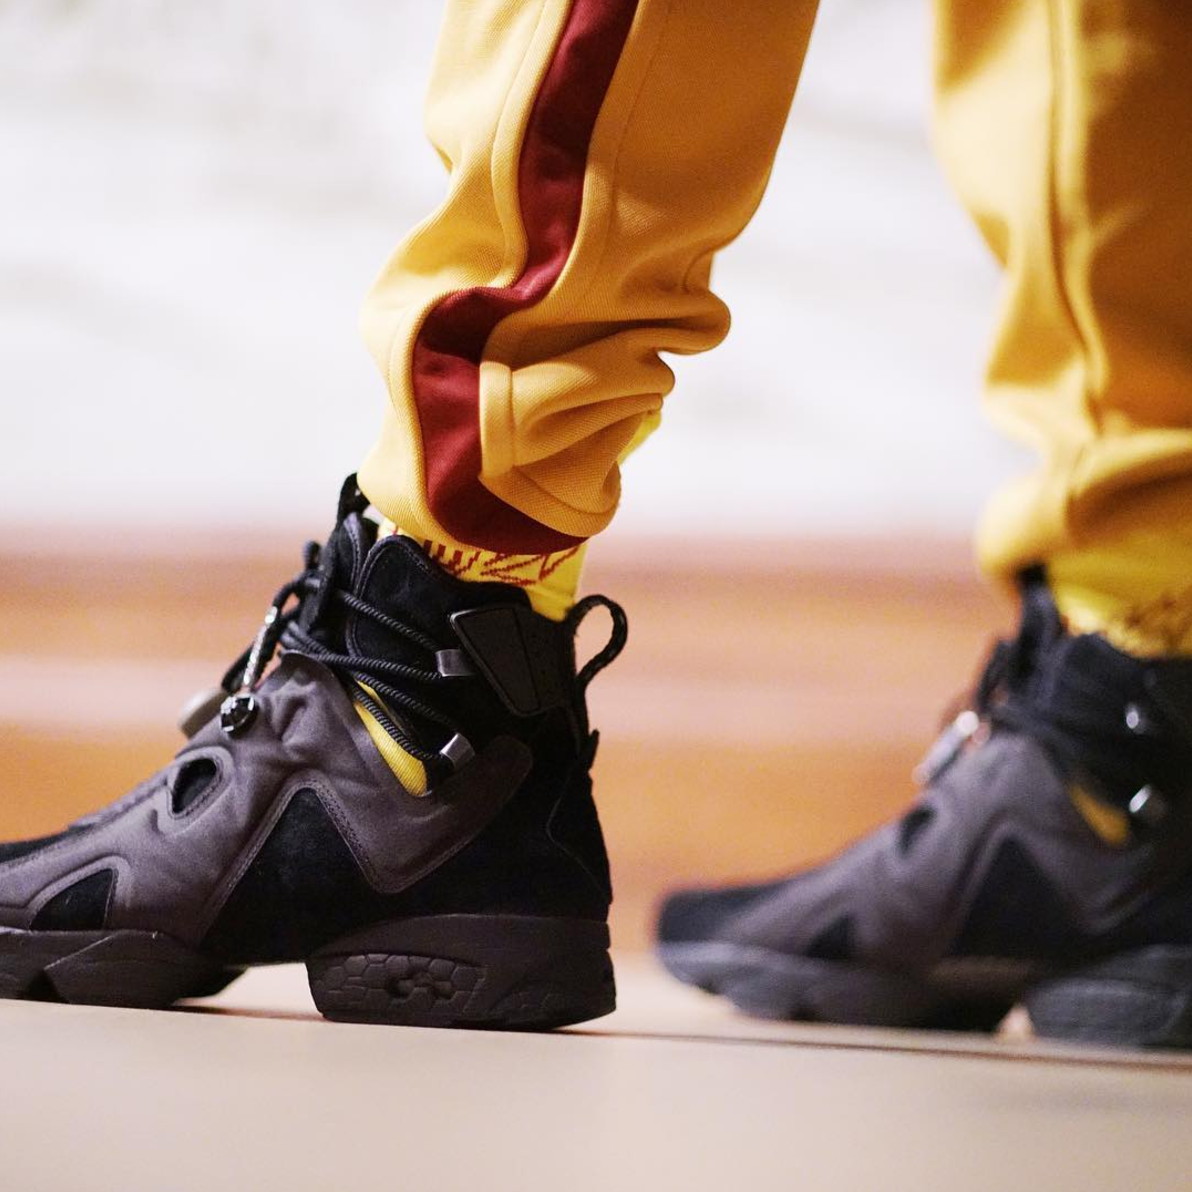 Future Previews Another Colourway Of His Reebok Collaboration